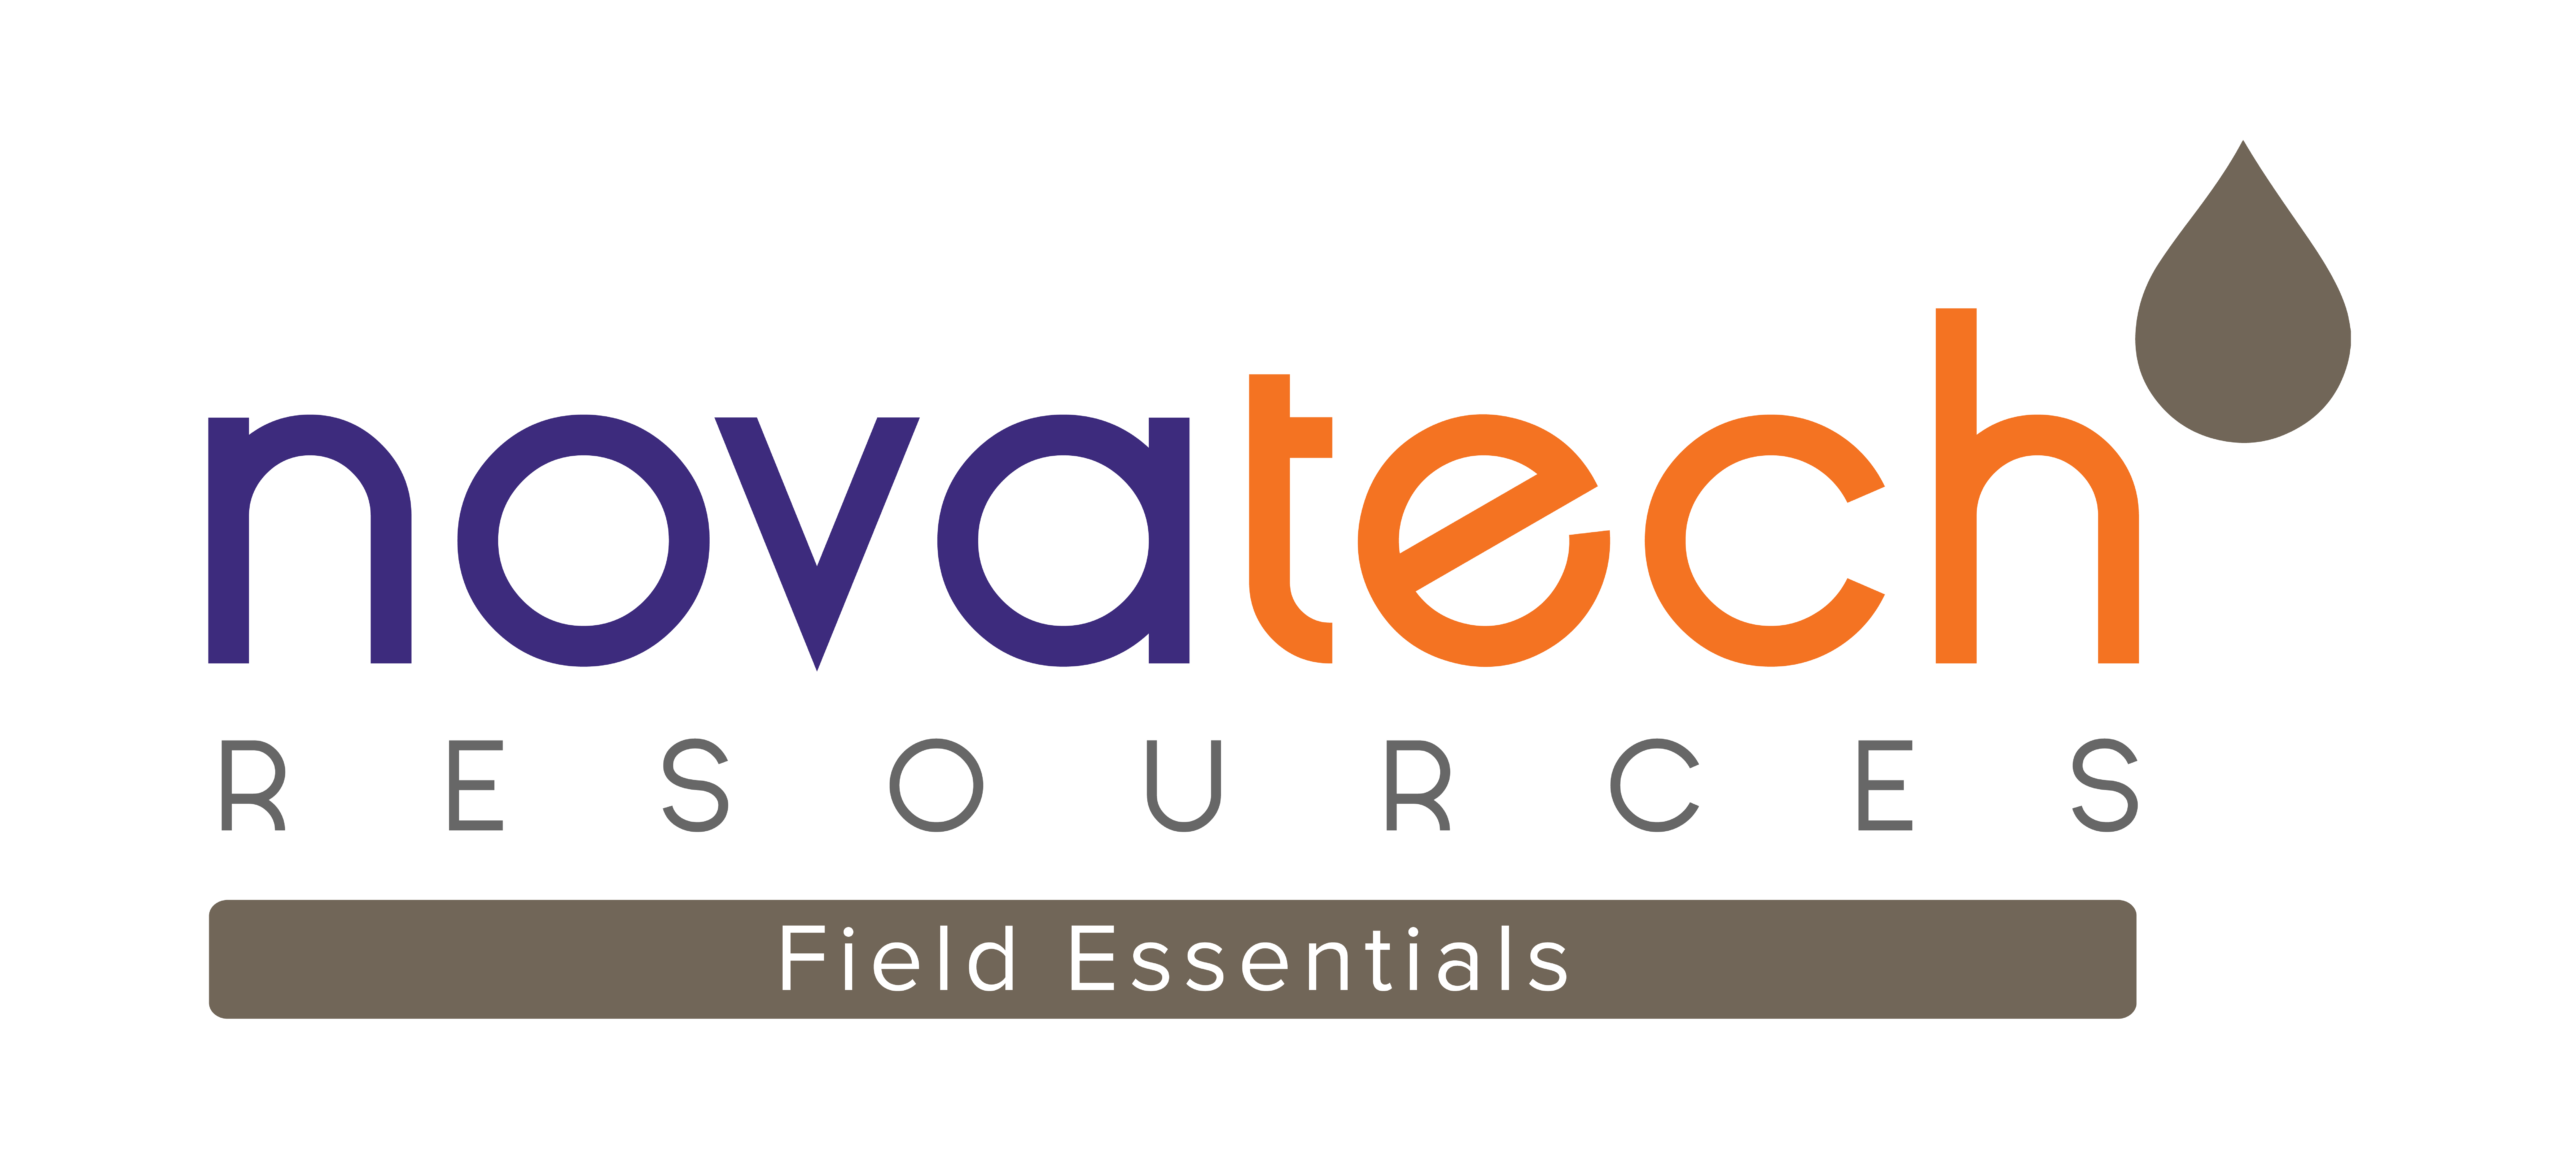 Field Essentials By Novatech Resources (Singapore)